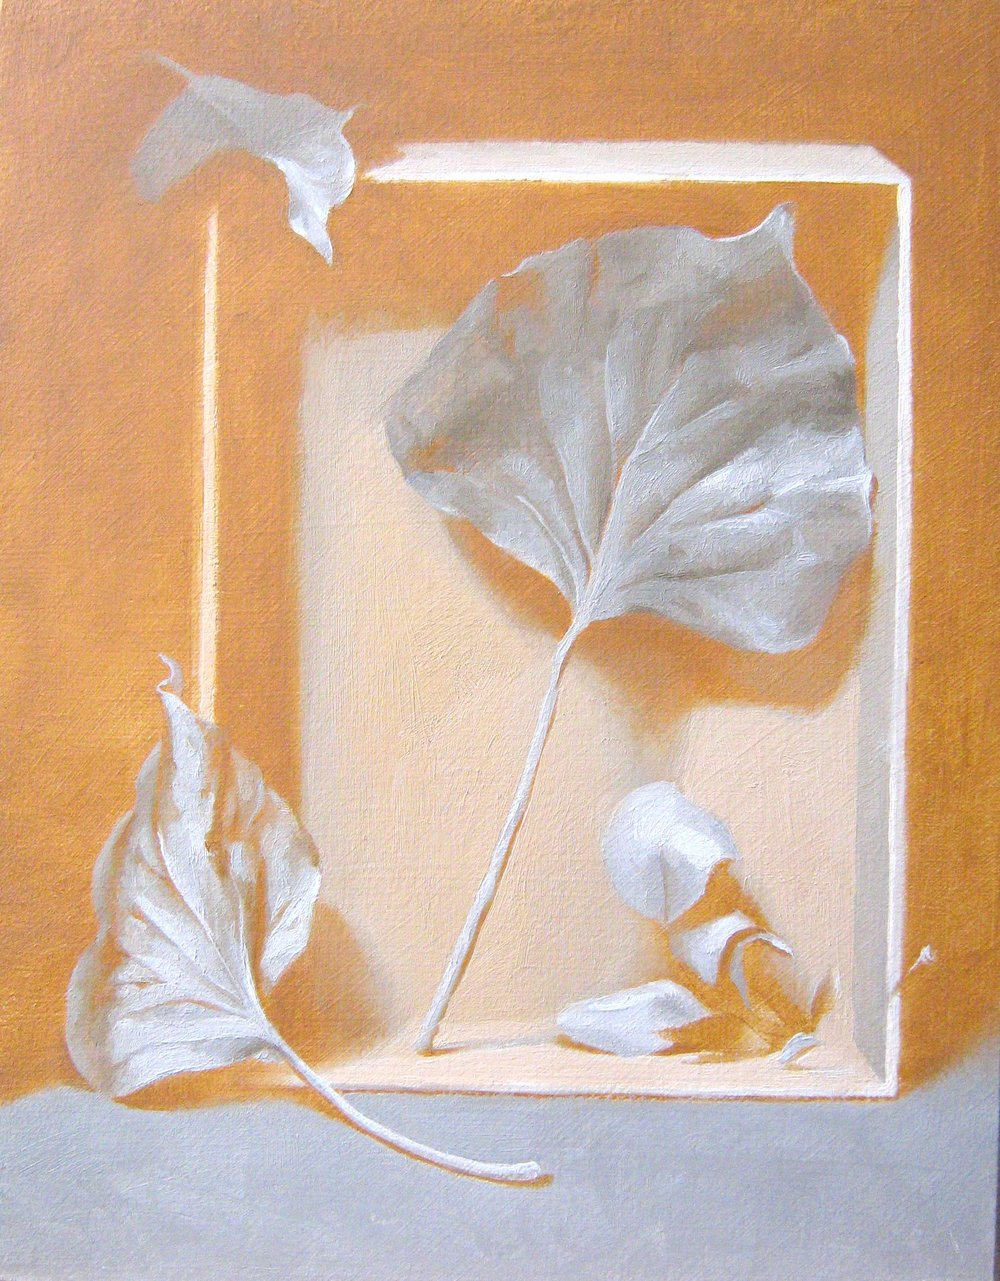 Leaves_underpainting_scrn.jpg